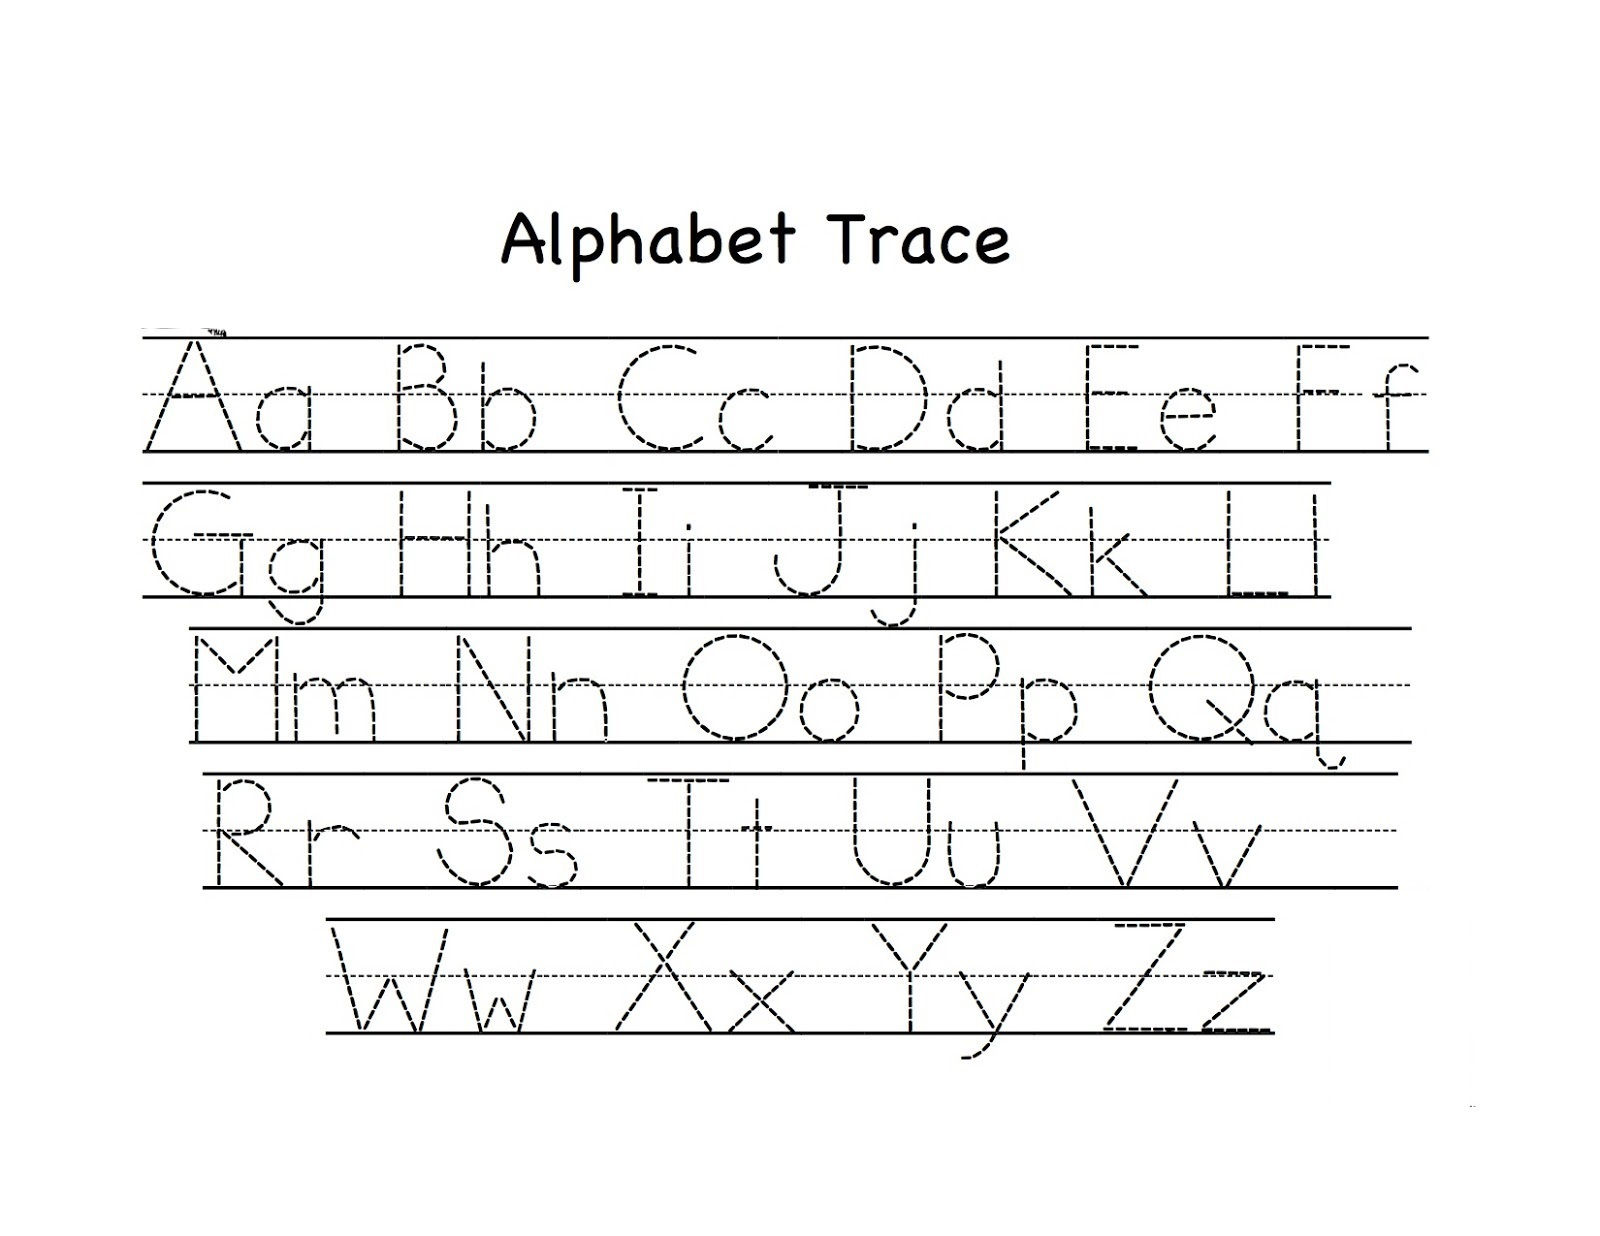 Preschool Tracing Worksheets - Best Coloring Pages For Kids pertaining to Alphabet Tracing Worksheets For Preschool